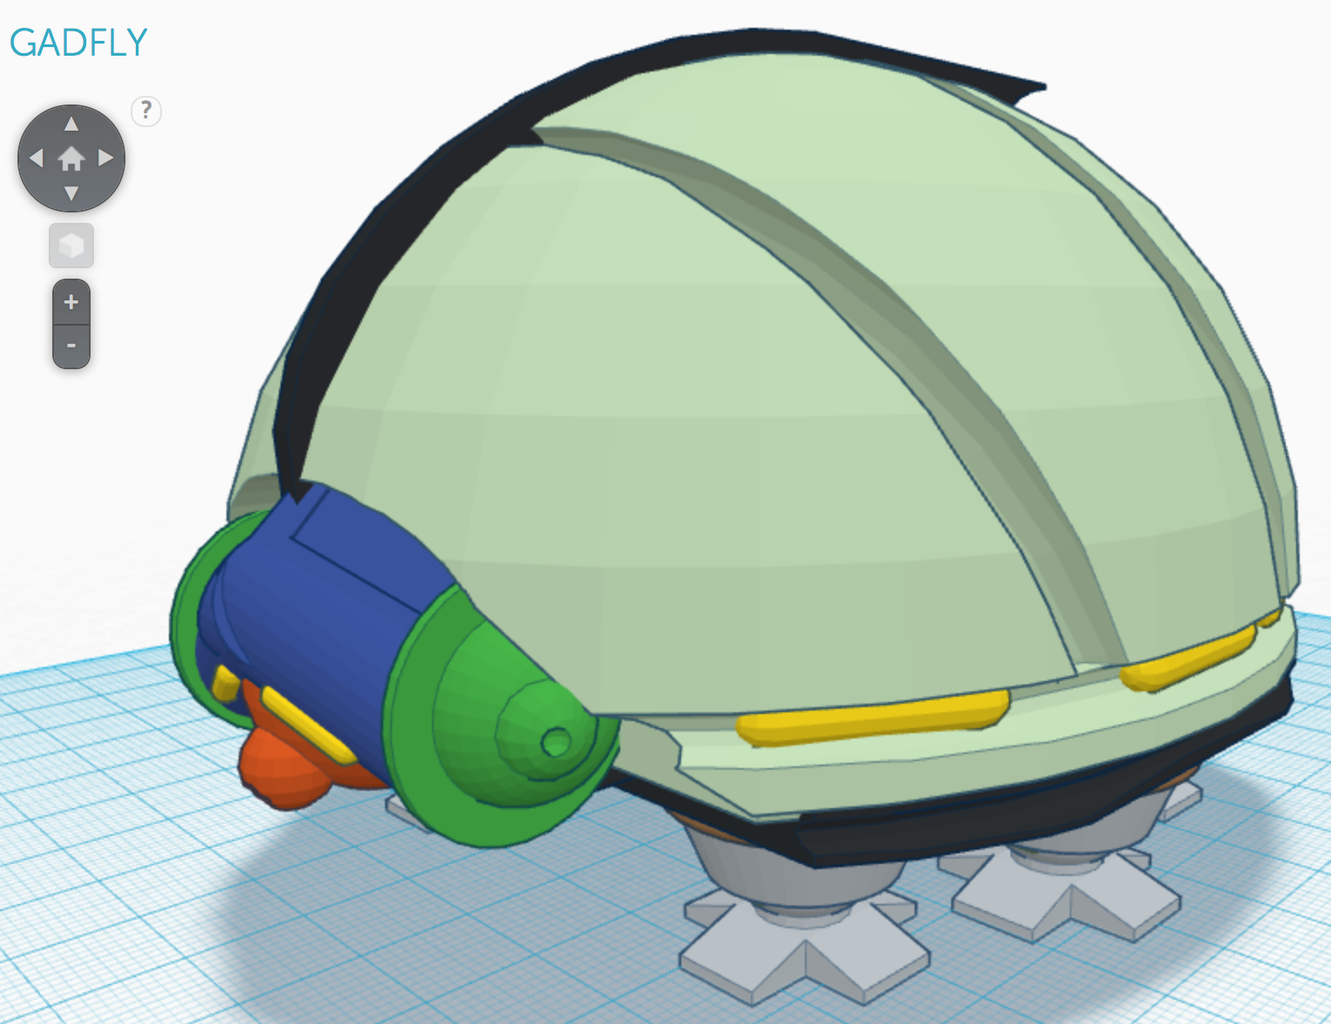 Create 3D Model in Tinkercad